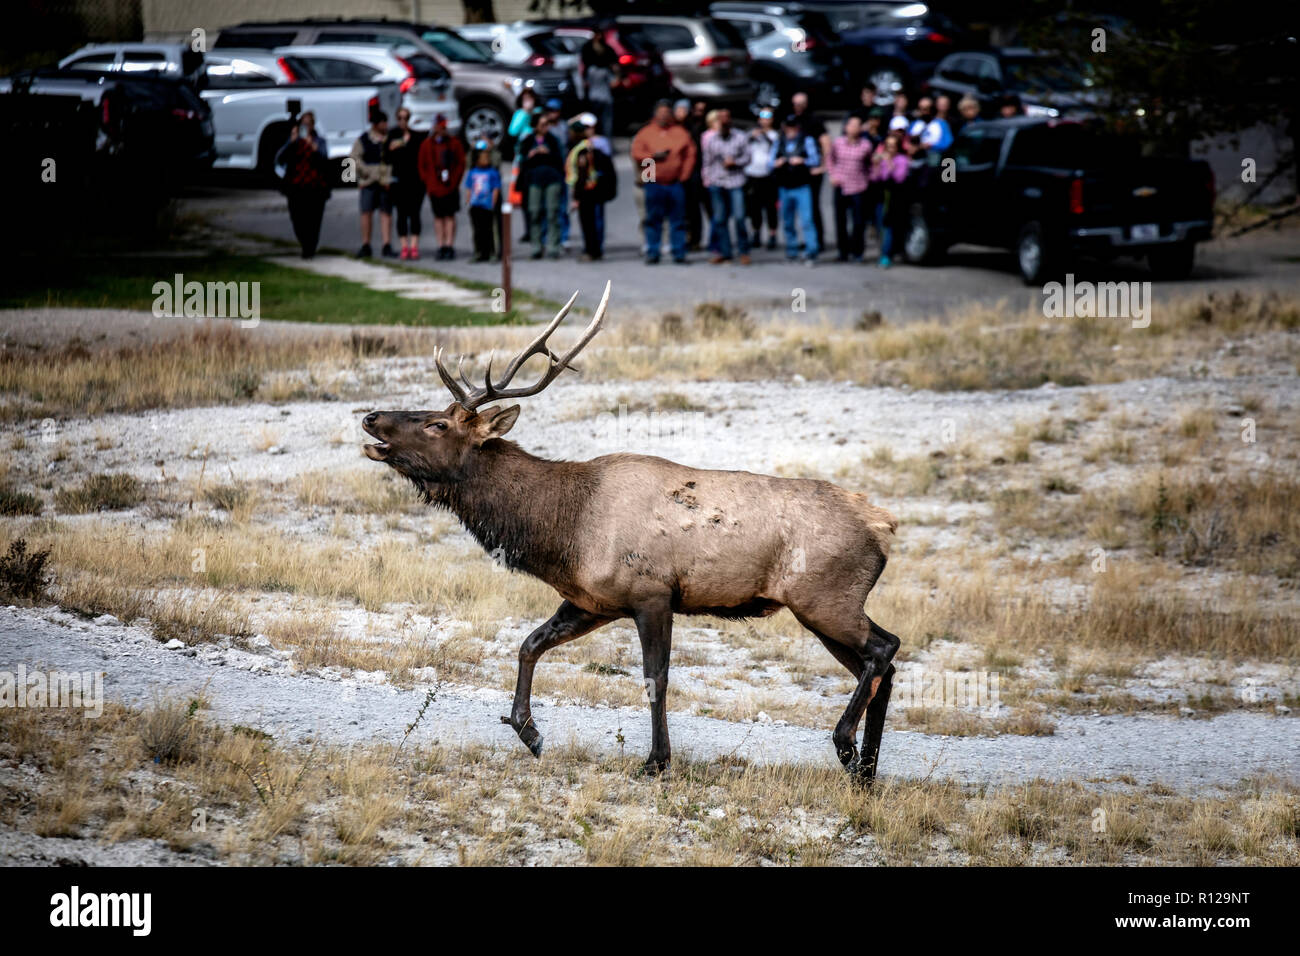 WY03500-00...WYOMING - Bull elk at Mammoth Hot Springs in Yellowstone National Park. - Stock Image